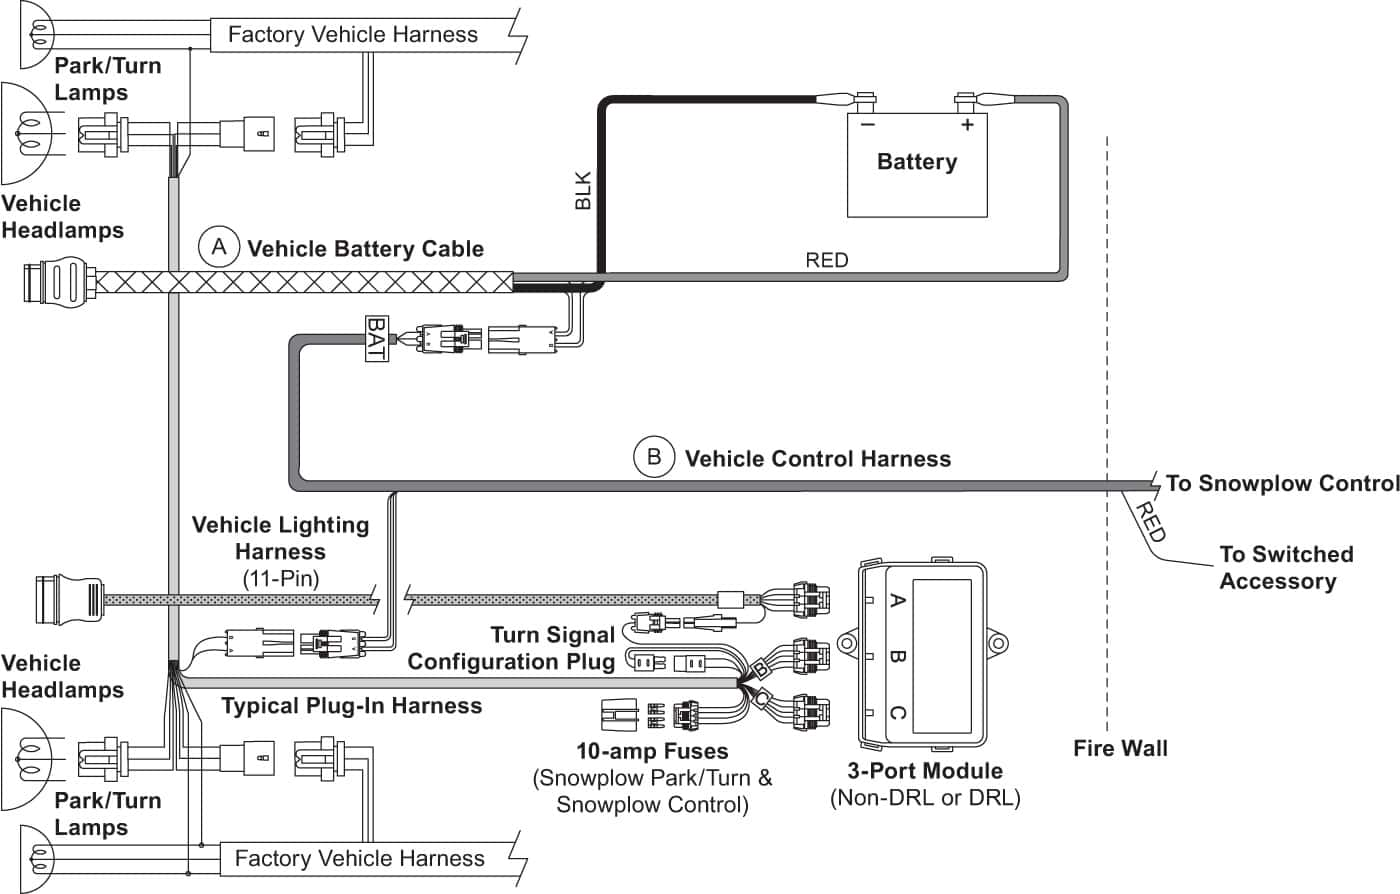 hight resolution of  snow plow wiring diagram xv2 vehicle side harness 3 port 2 plug diagram